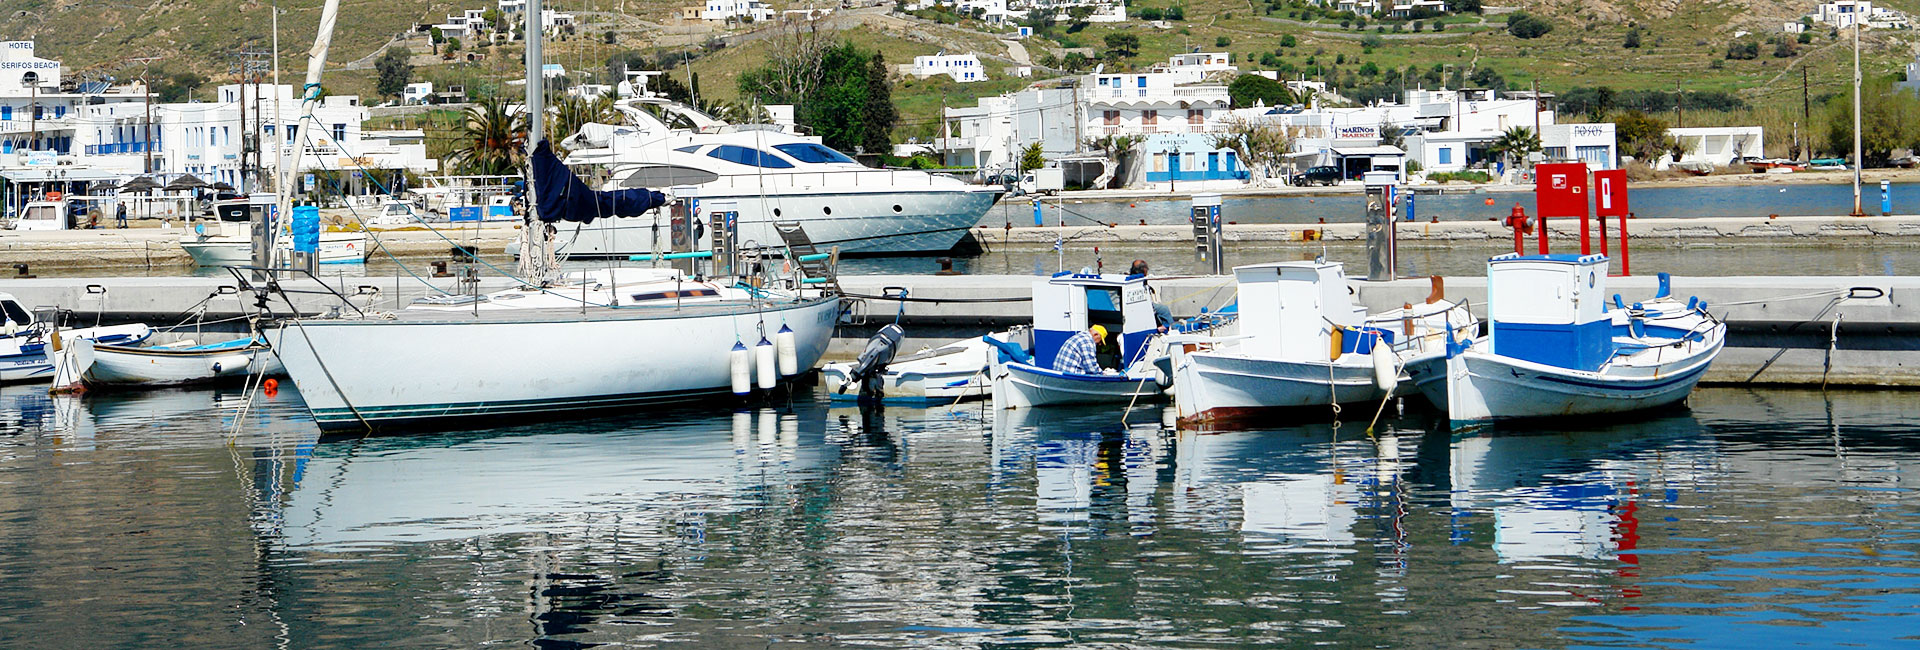 Livadi, the port of Serifos